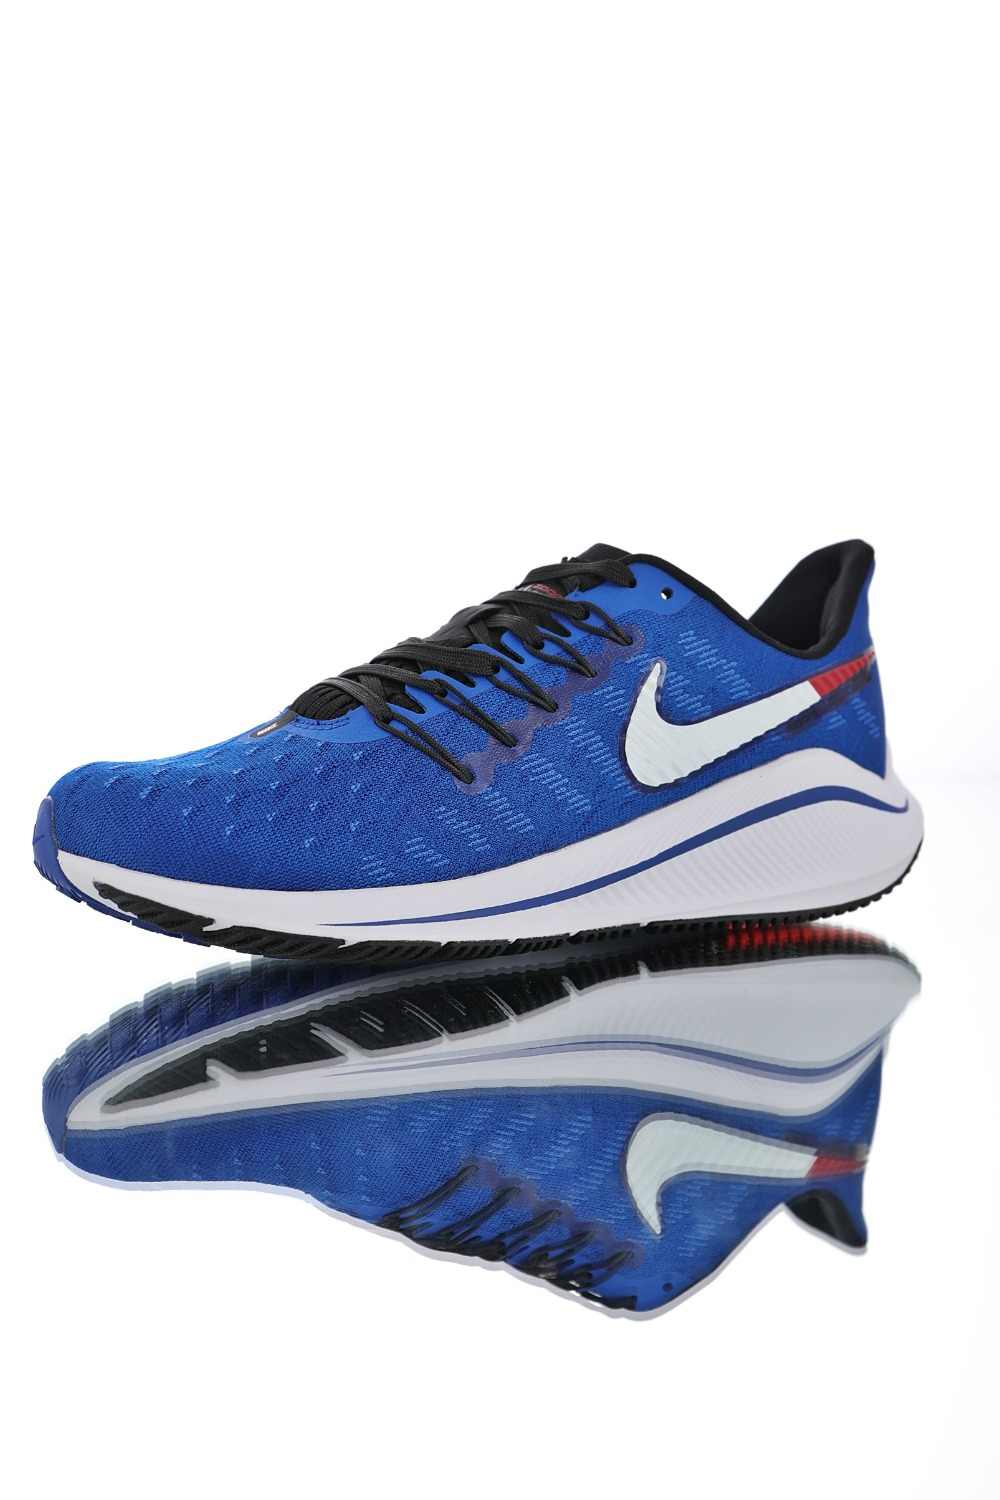 cd2908fb2ef2e ... Original Nike Air Zoom Vomero 14 Men s Breathable Running Shoes Sports  Sneakers Trainers Nike Shoes AH7857 ...